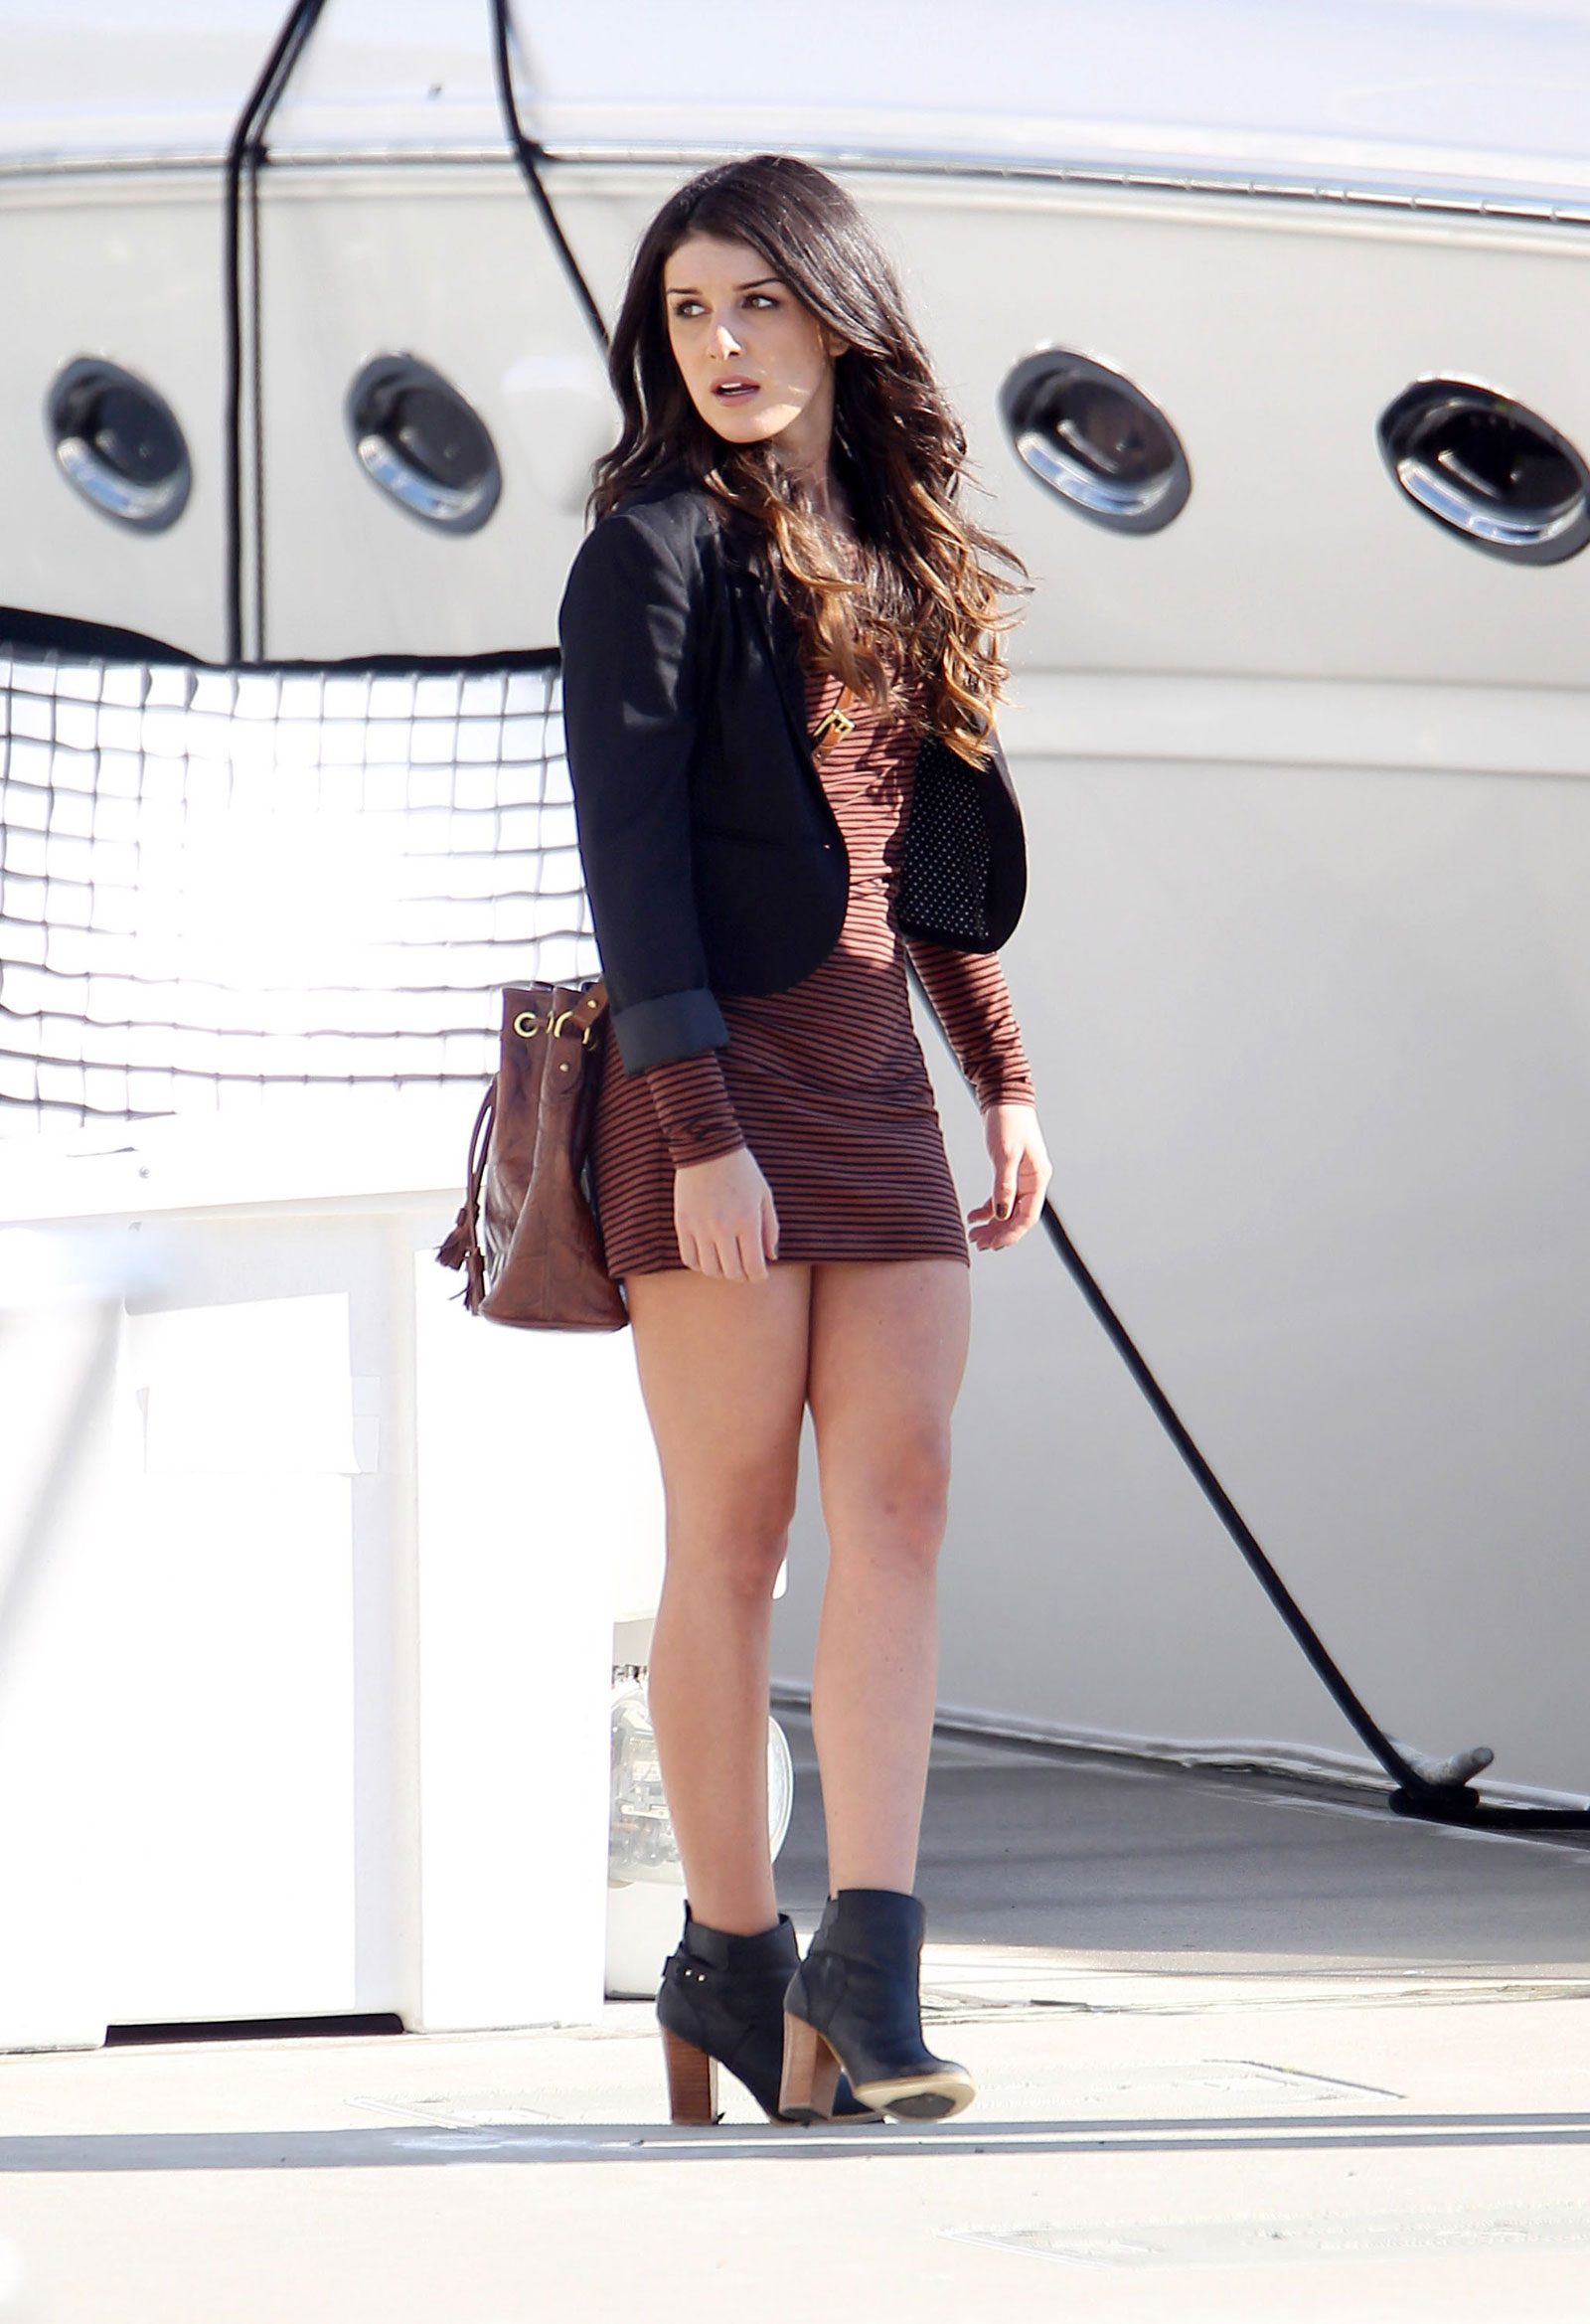 Discussion on this topic: Sarah Roemer, shenae-grimes/